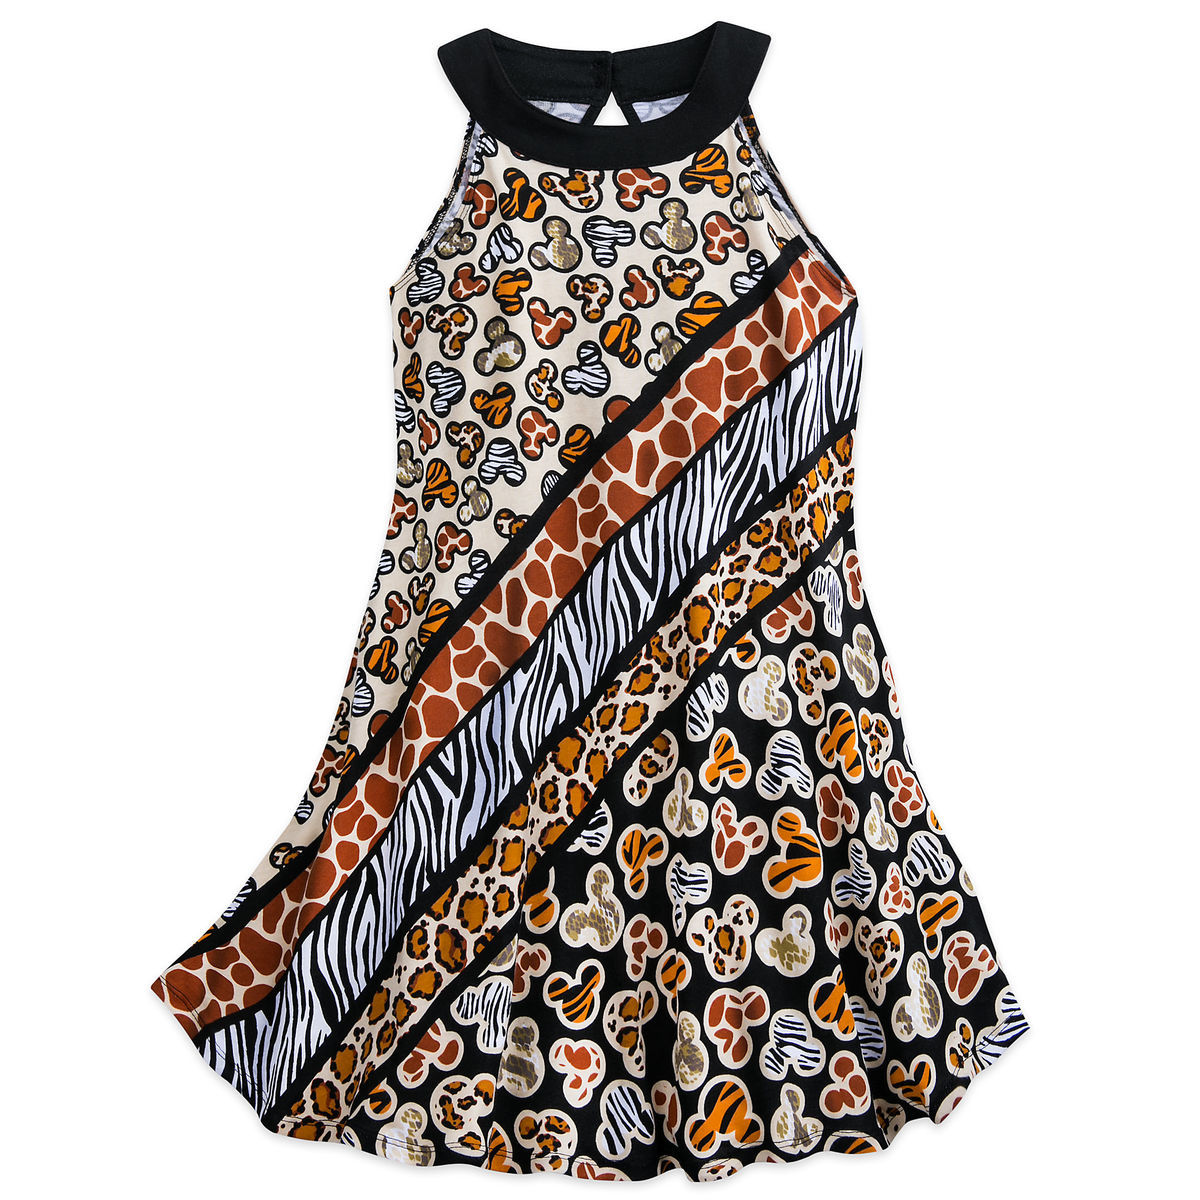 da64a7fd77 Product Image of Mickey Mouse Animal Print Dress for Girls - Disney s Animal  Kingdom   1